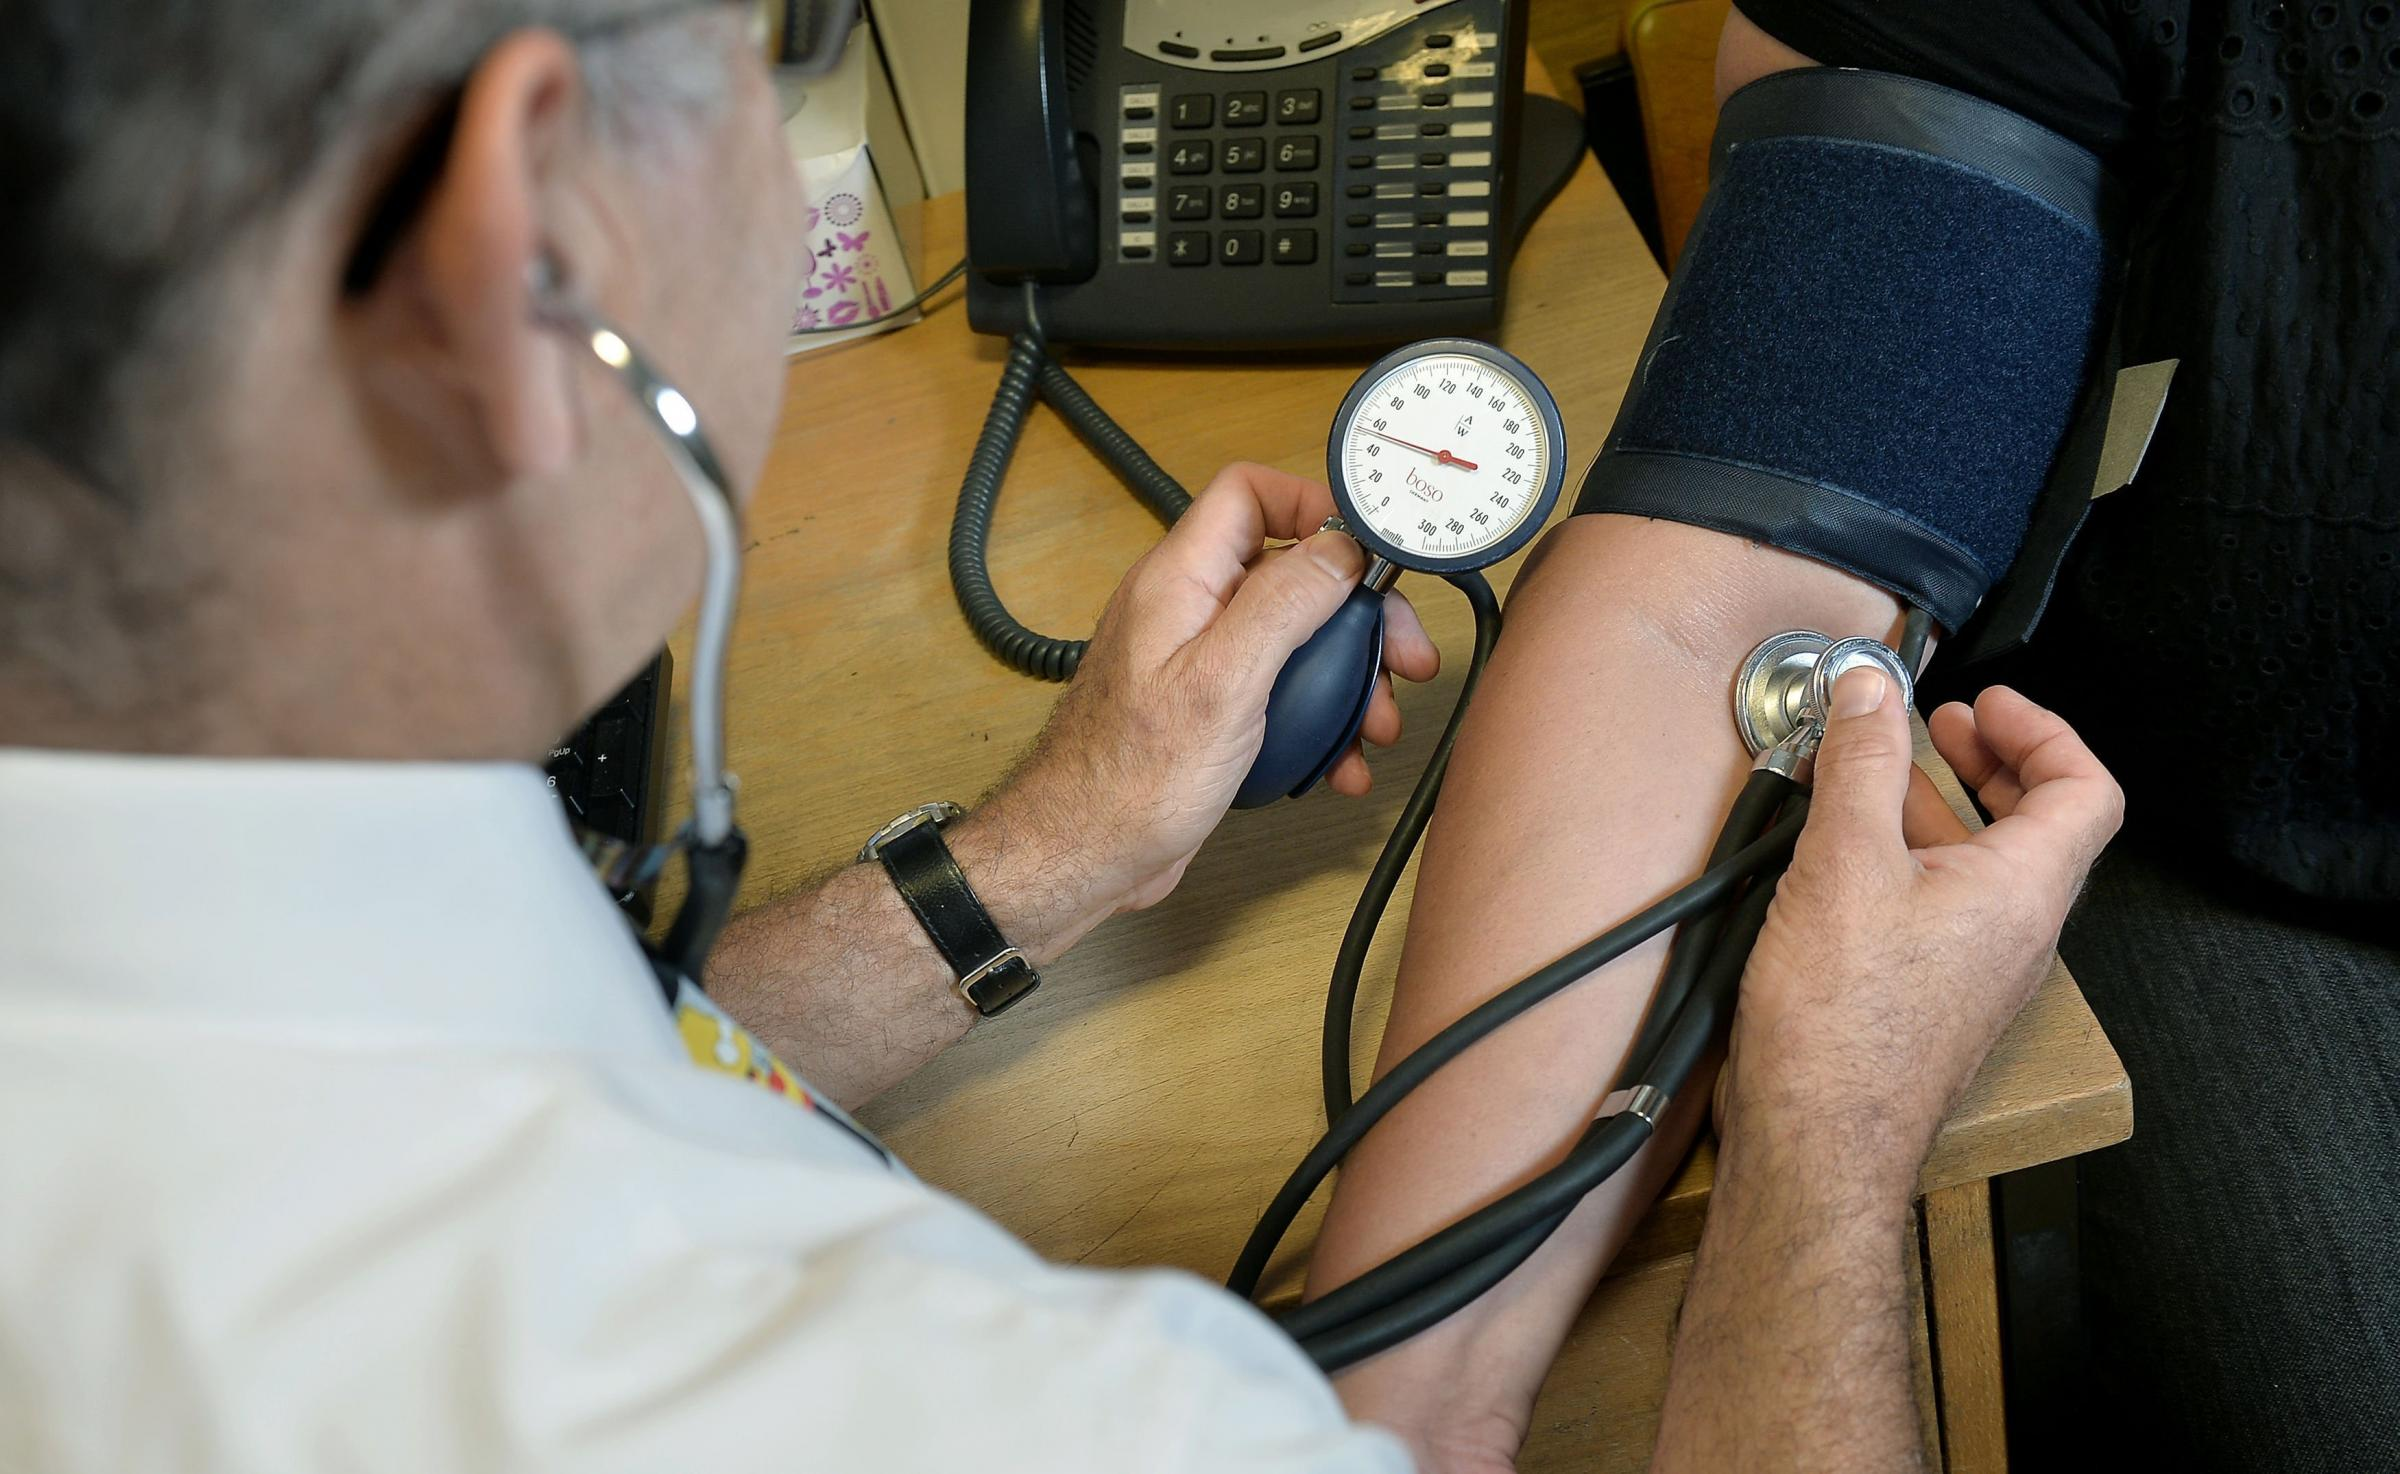 The Practice Group is to end its contract running five GP surgeries in Brighton and Hove because the current agreement had become